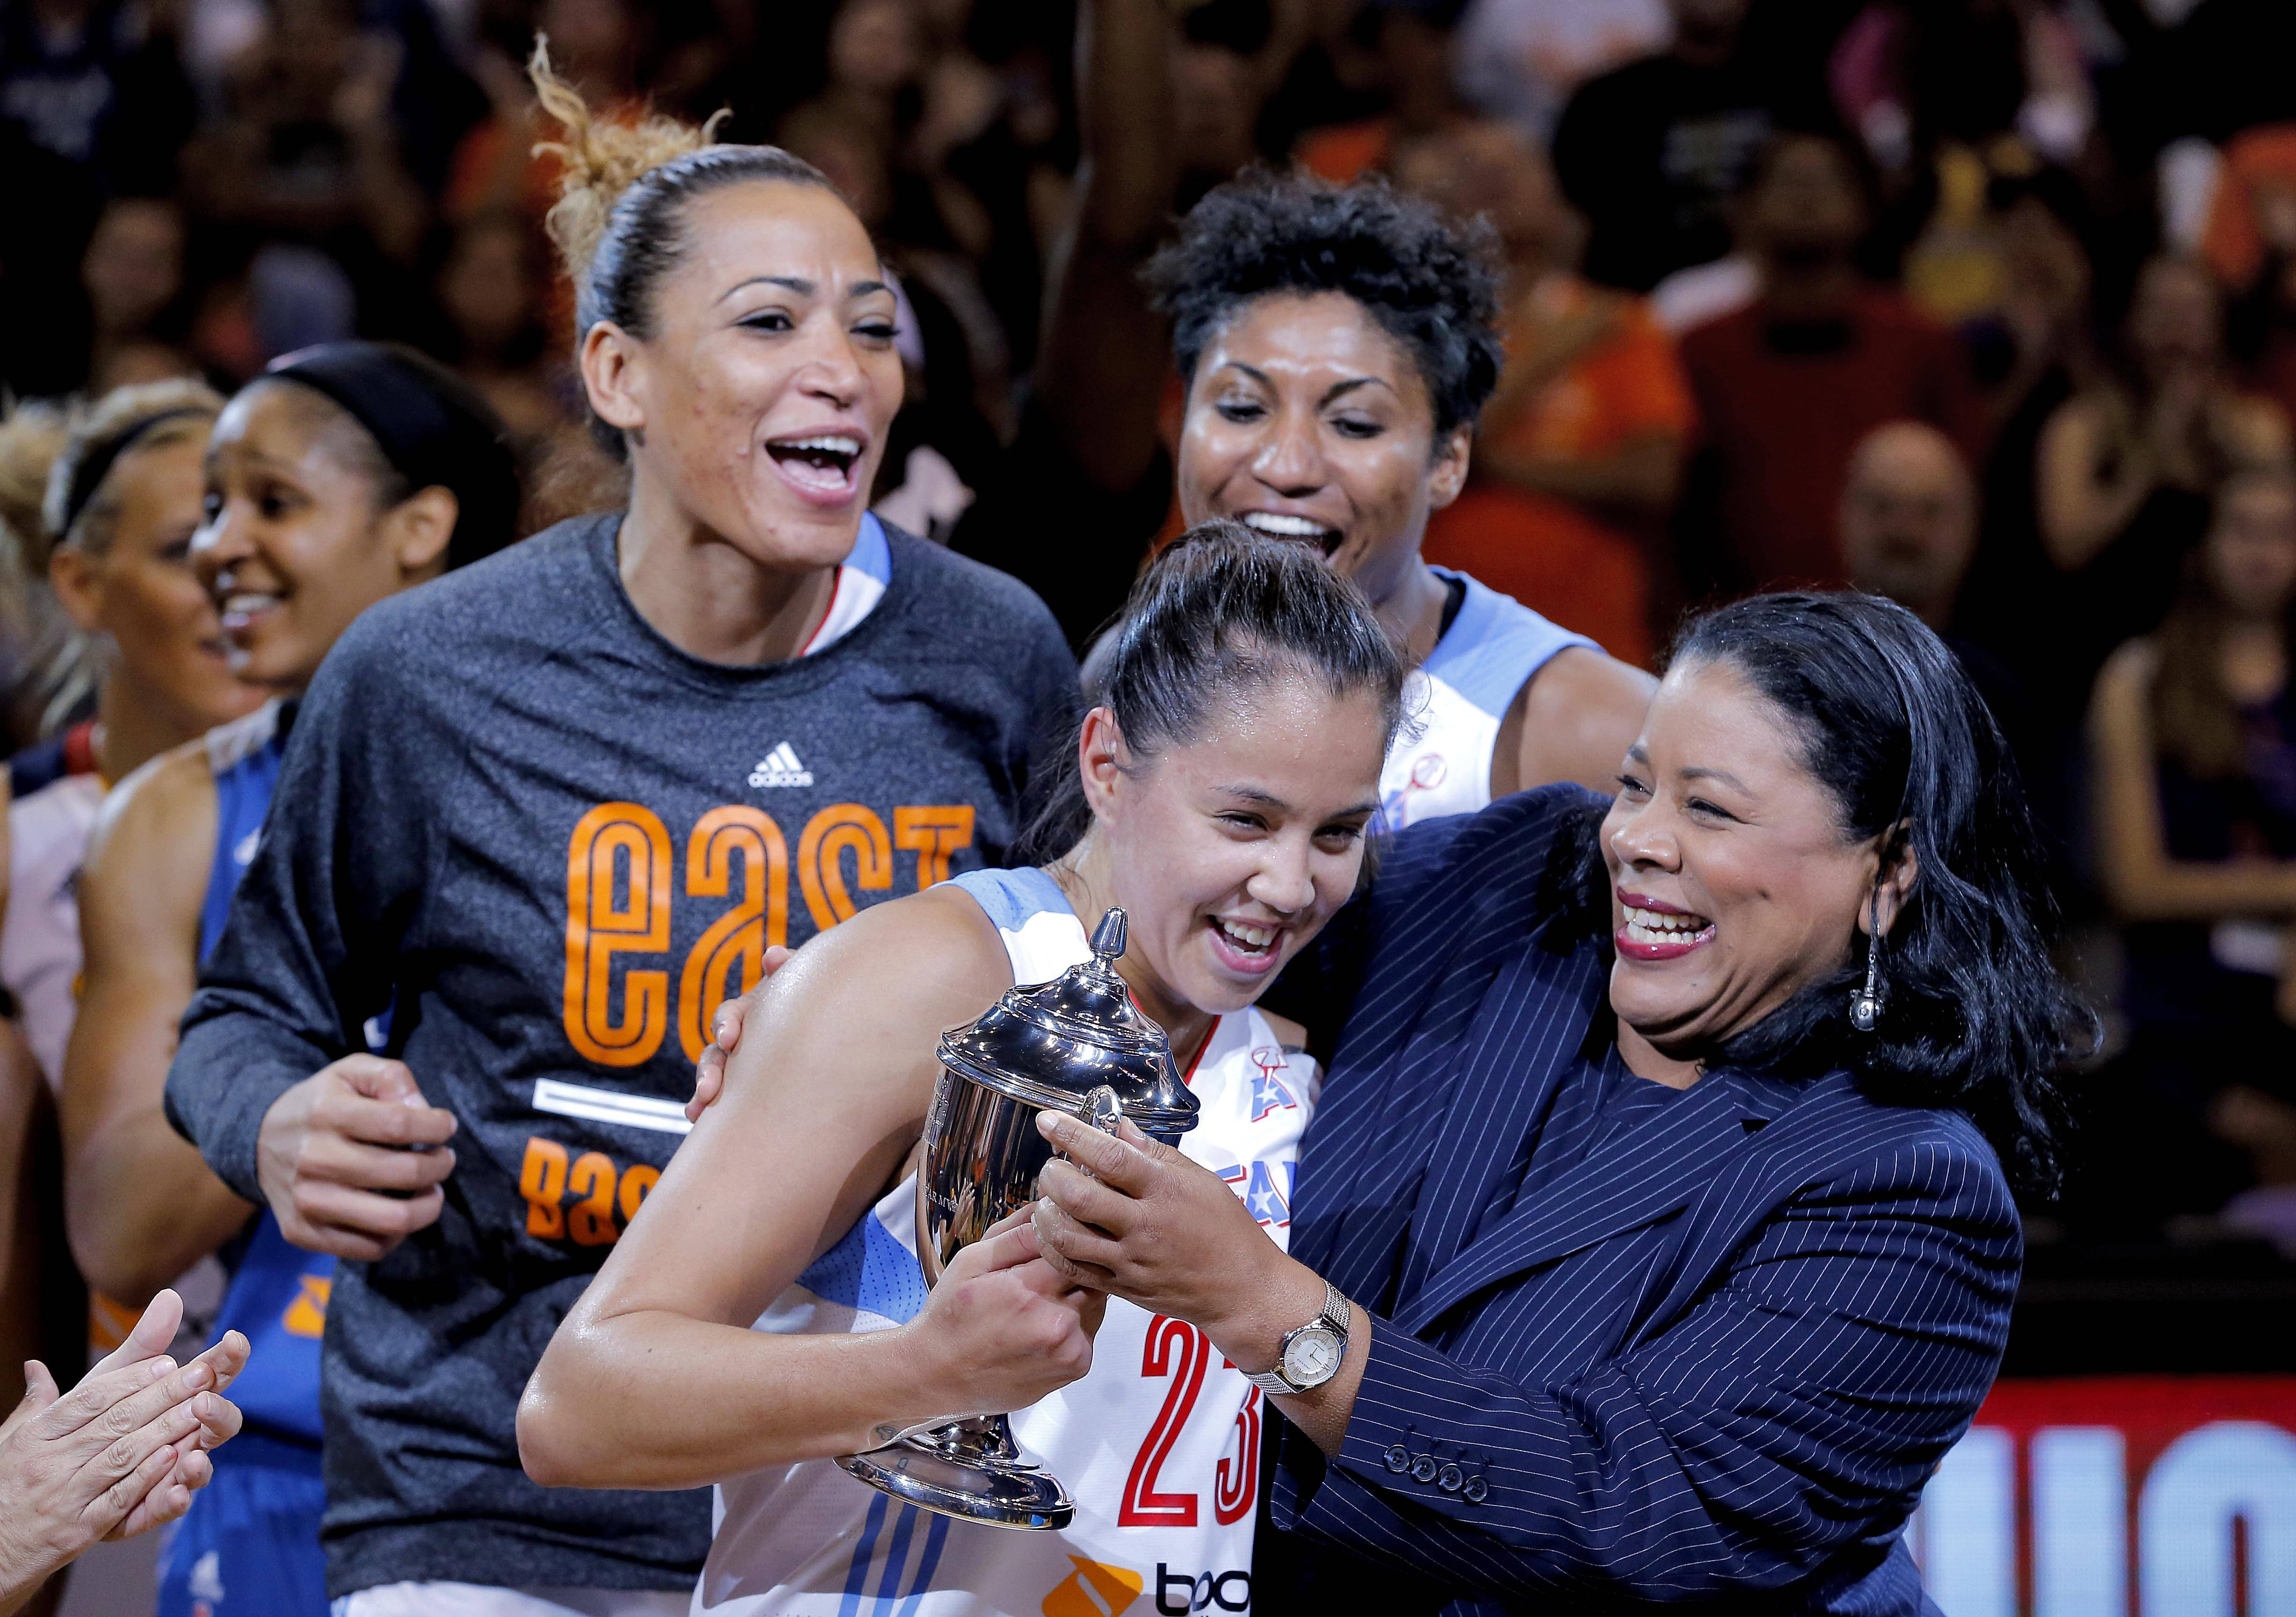 East's Shoni Schimmel, of the Atlanta Dream, is presented the MVP trophy by WNBA President Laurel J. Richie, right, after the WNBA All-Star basketball game Saturday in Phoenix. The East won 125-124 in overtime.